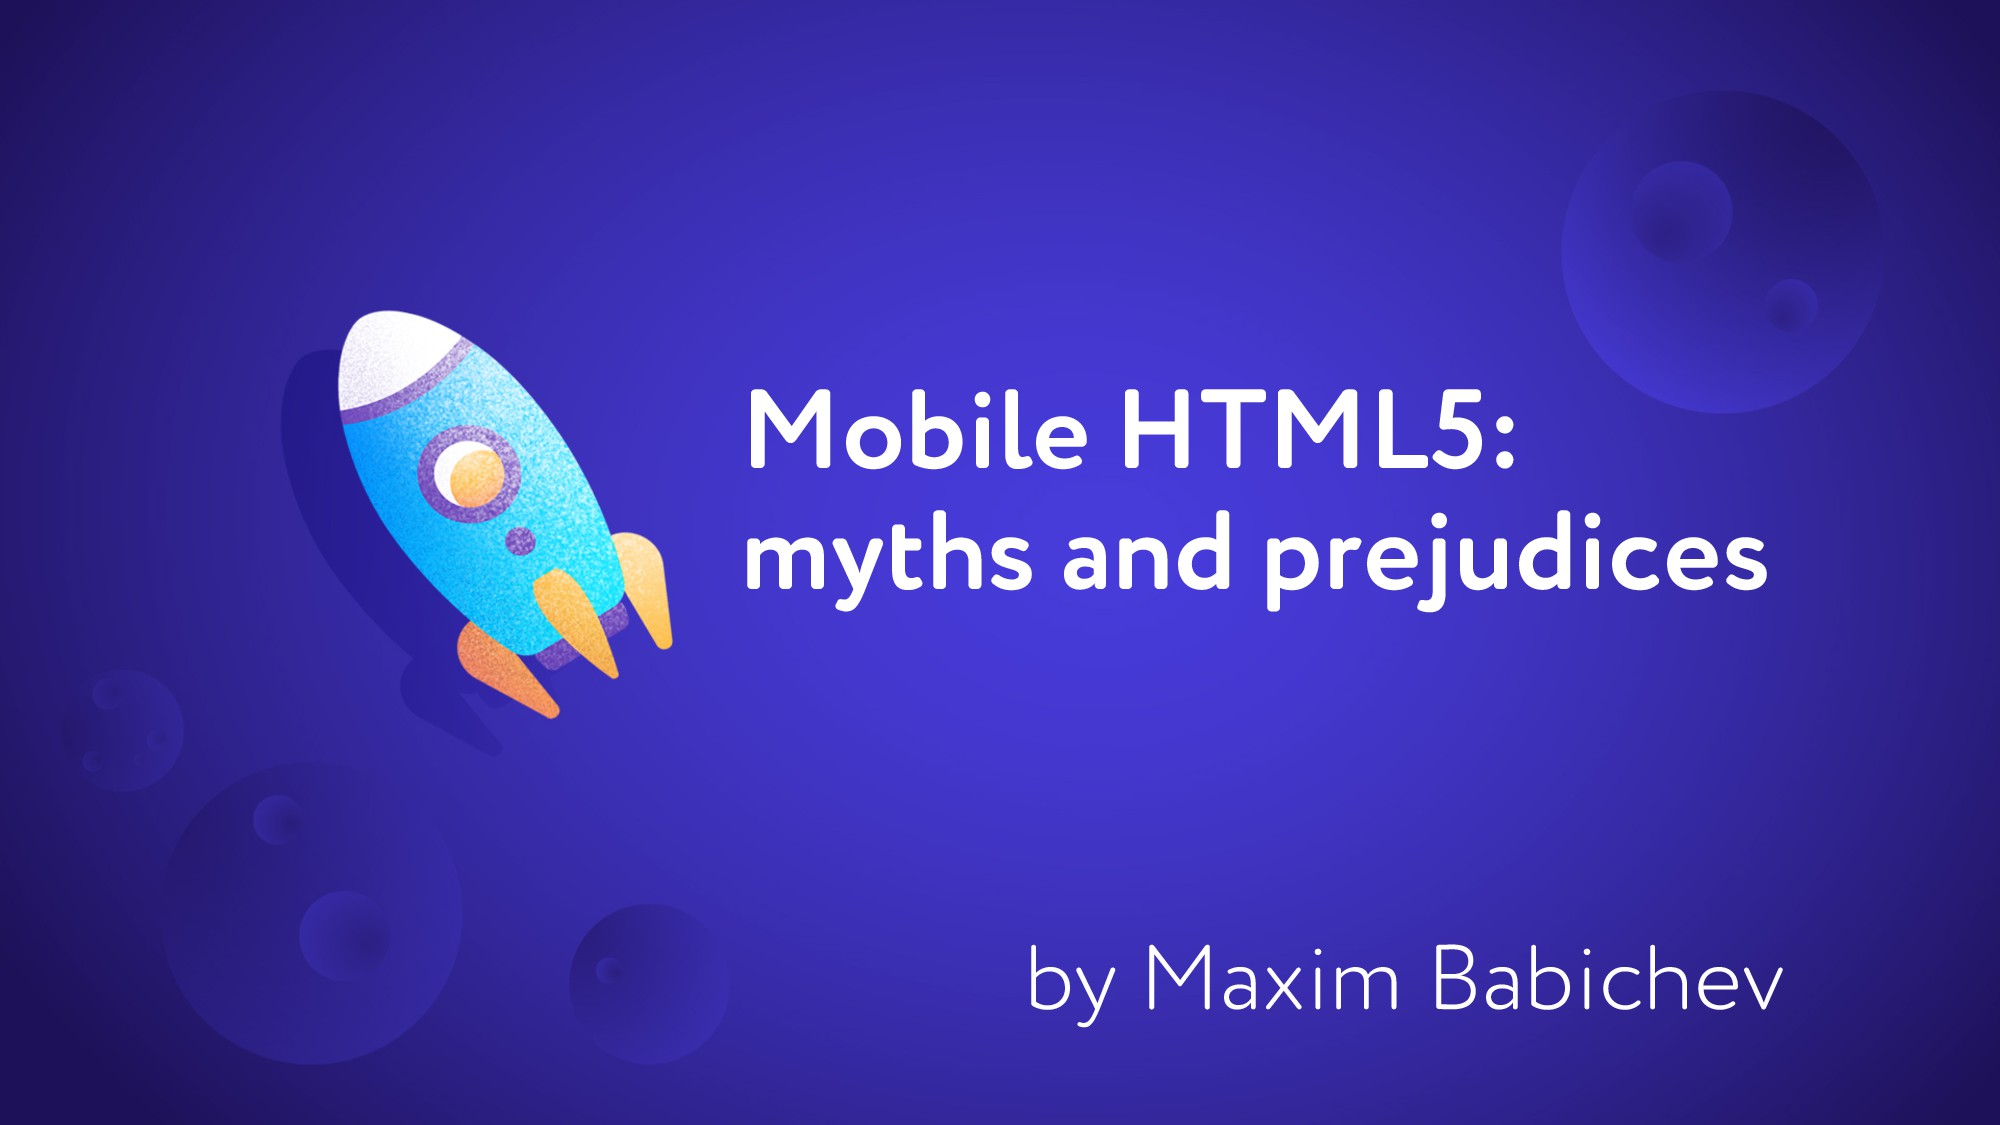 Mobile HTML5: myths and prejudices by Maxim Bab...